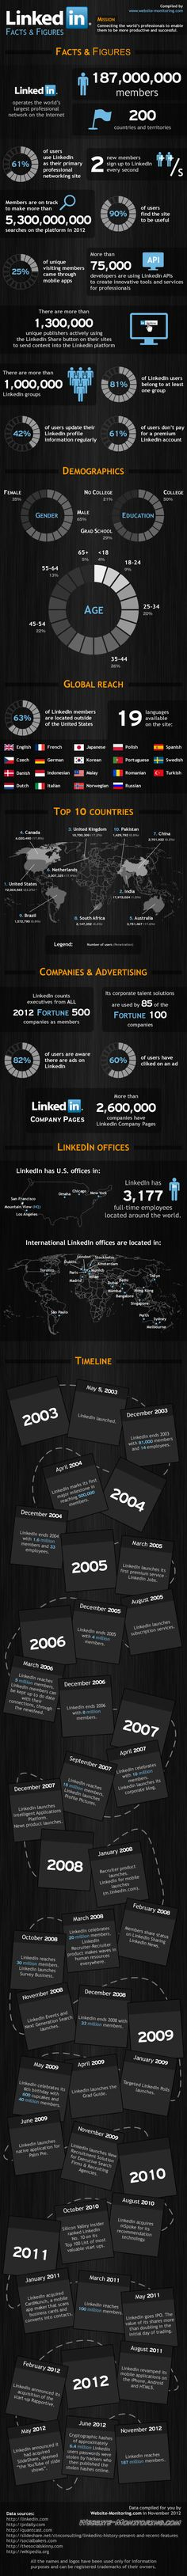 By far the most impressive Linkedin infographic I have ever seen!